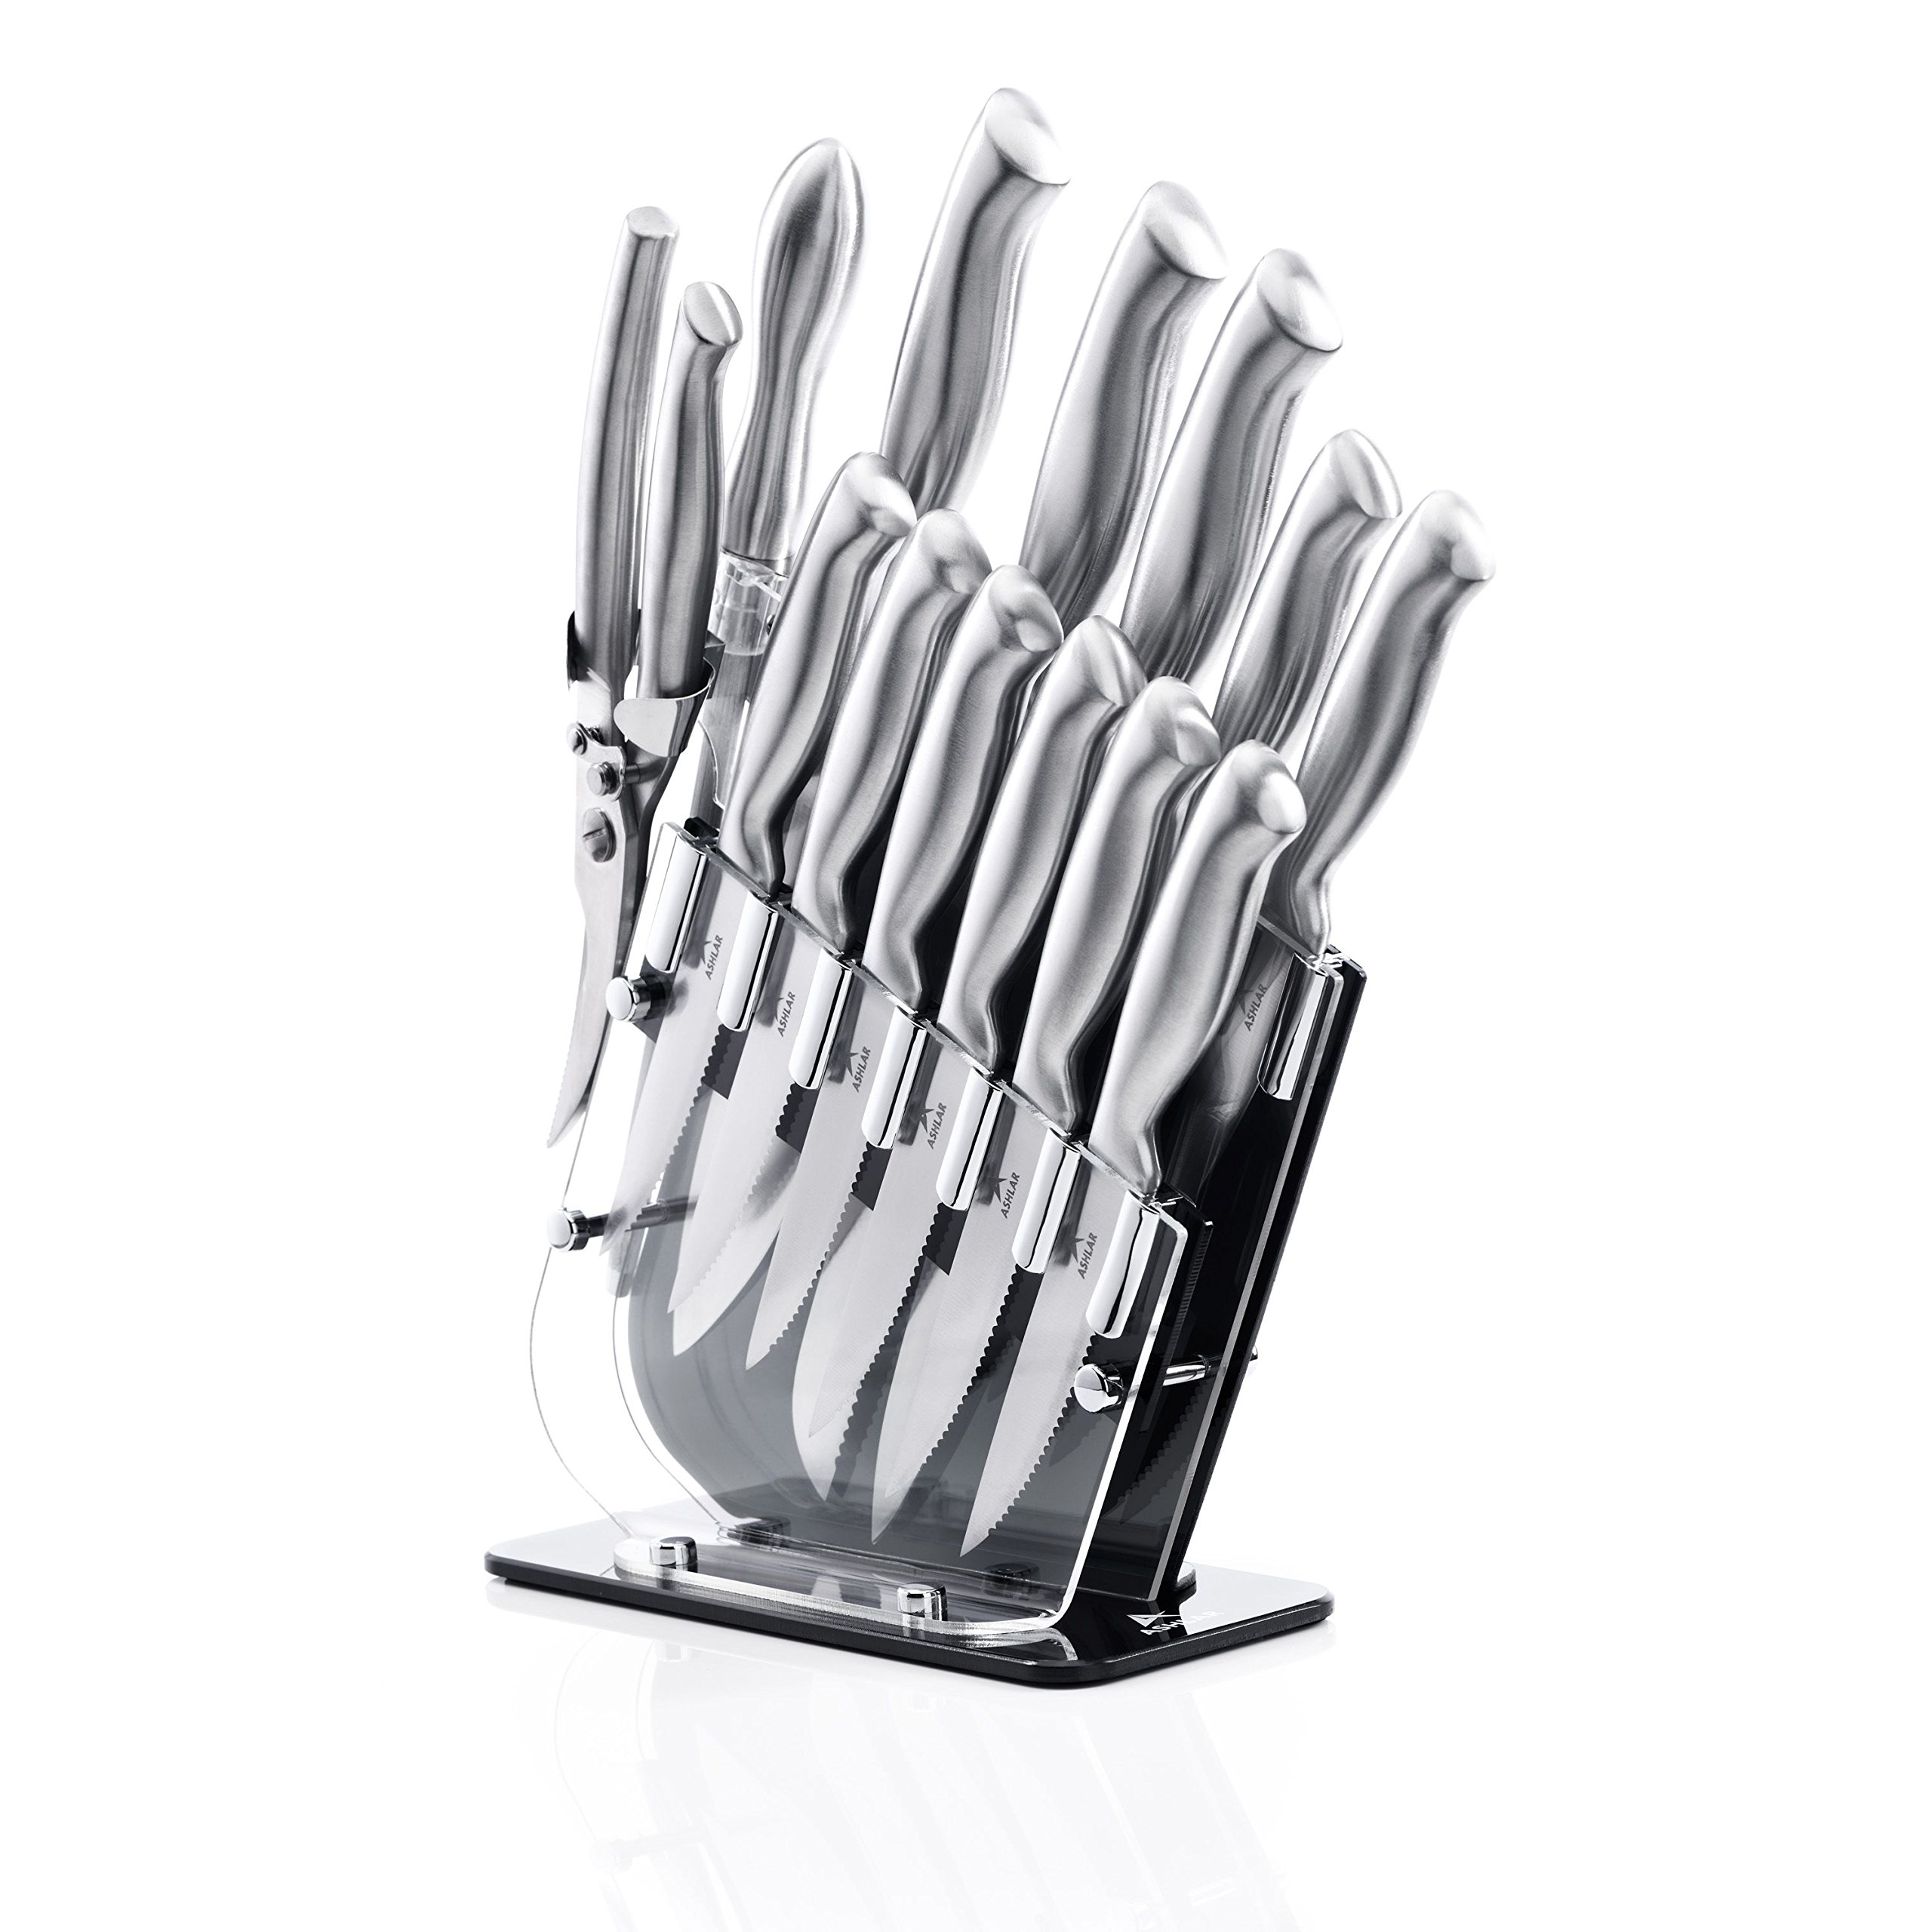 Ashlar Kitchen Knife Set Acrylic Block 14-Piece Stainless Steel - Includes Knife Sharpener & Kitchen Scissors